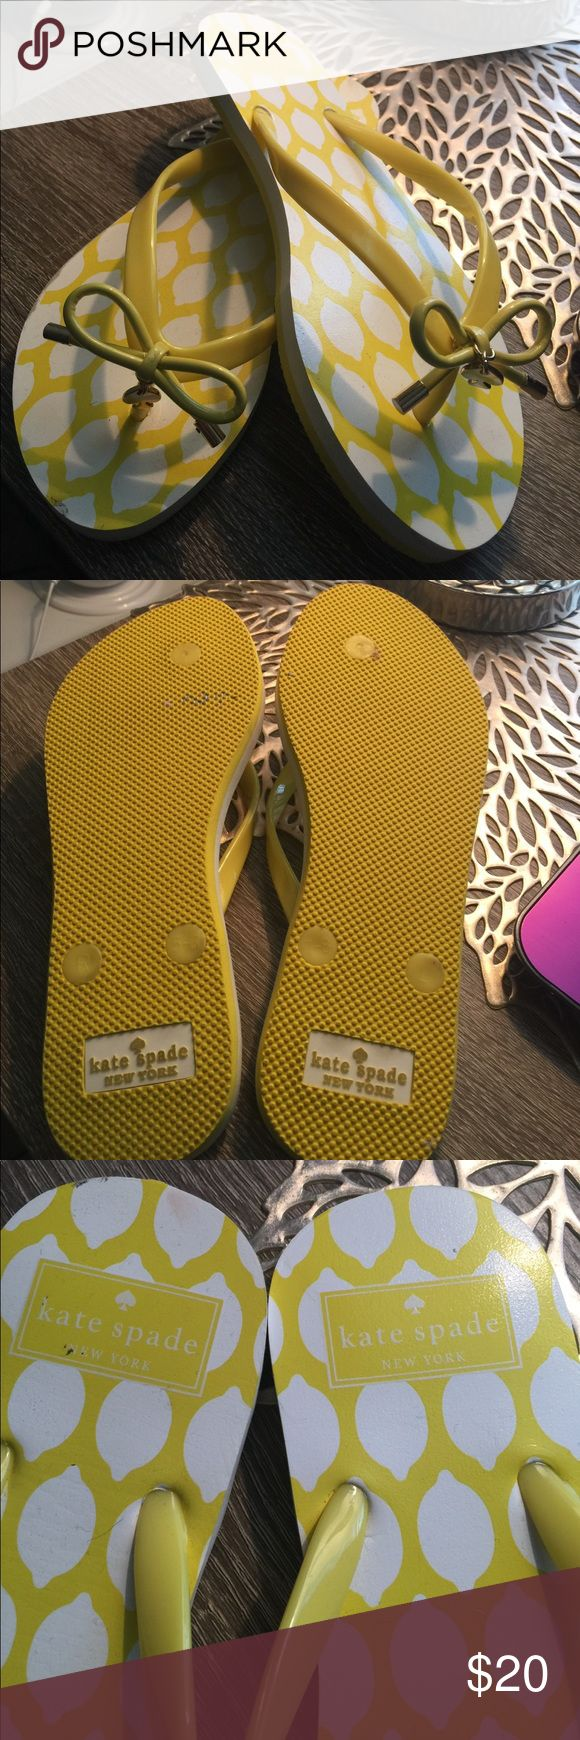 KATE SPADE flip flops! Cute Summer flip flops by Kate Spade. New with no tags. Gold spade accents on how on each foot & designer stamp on heels area and bottom of shoe. Never worn as you can see from bottom picture. Clear out sale! Kate Spade Shoes